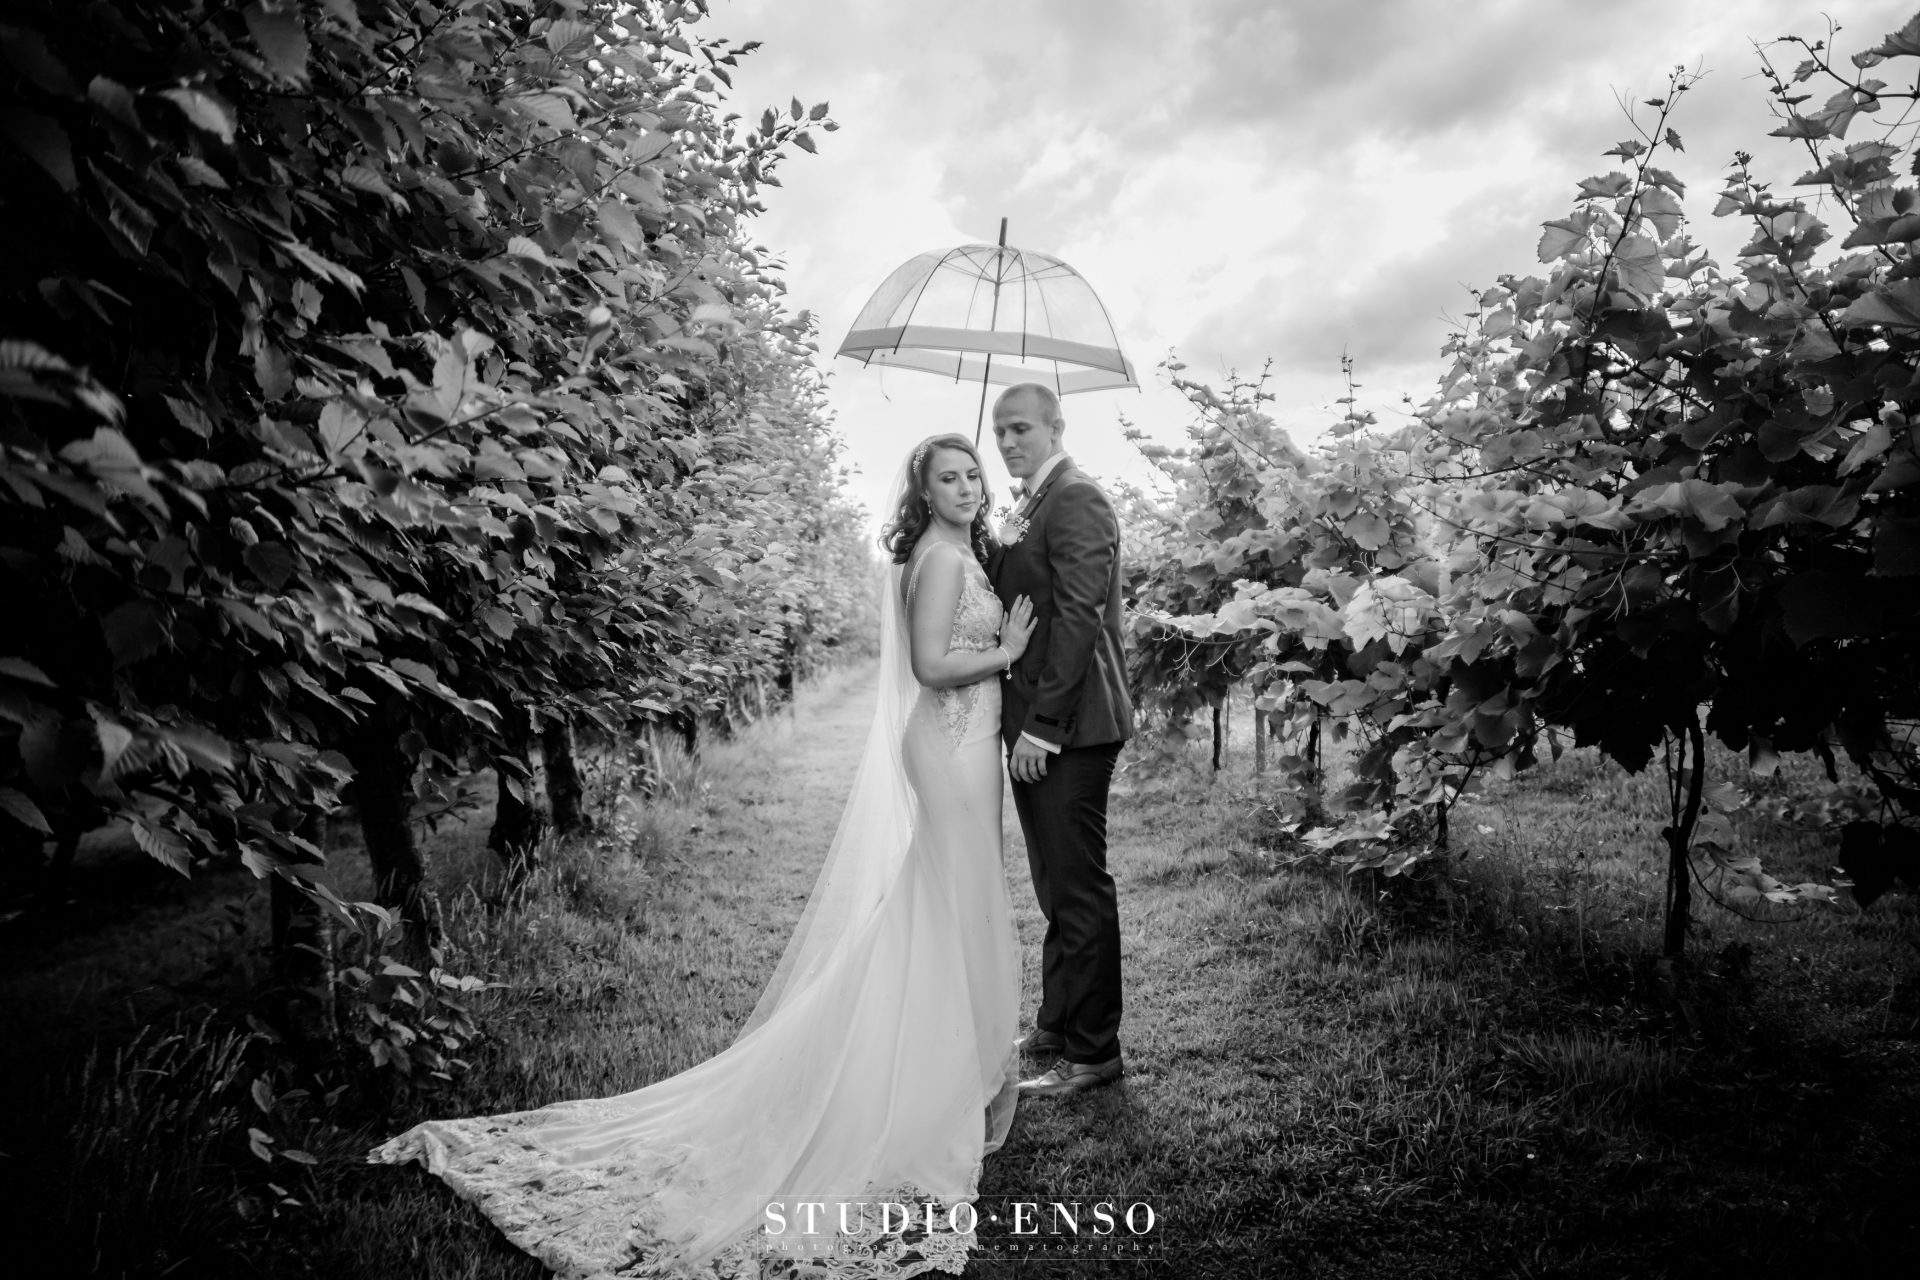 Bride and Groom under an umbrella on their wedding day at Llanerch Vineyard